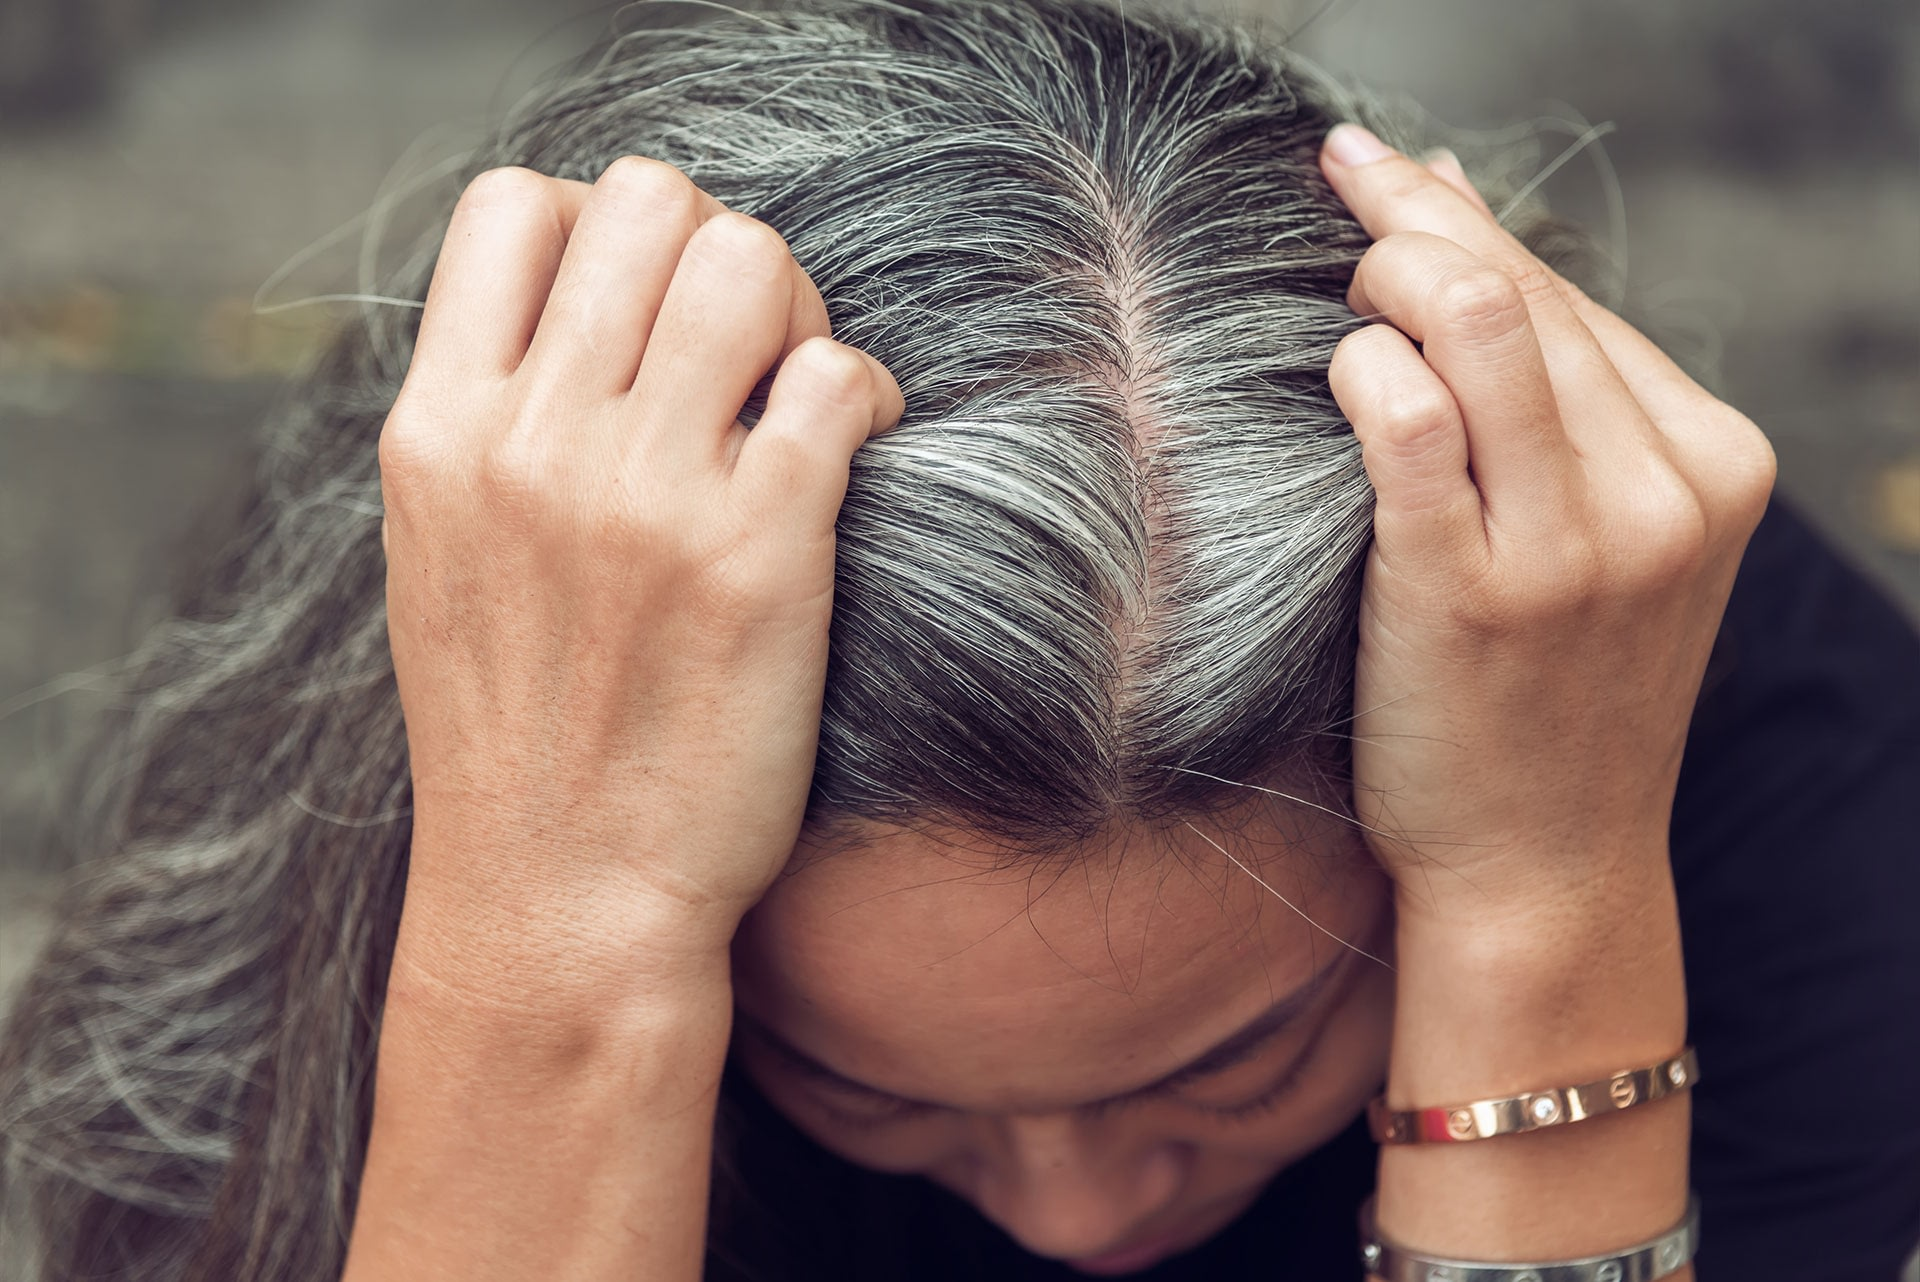 lady parting hair to show gray hair